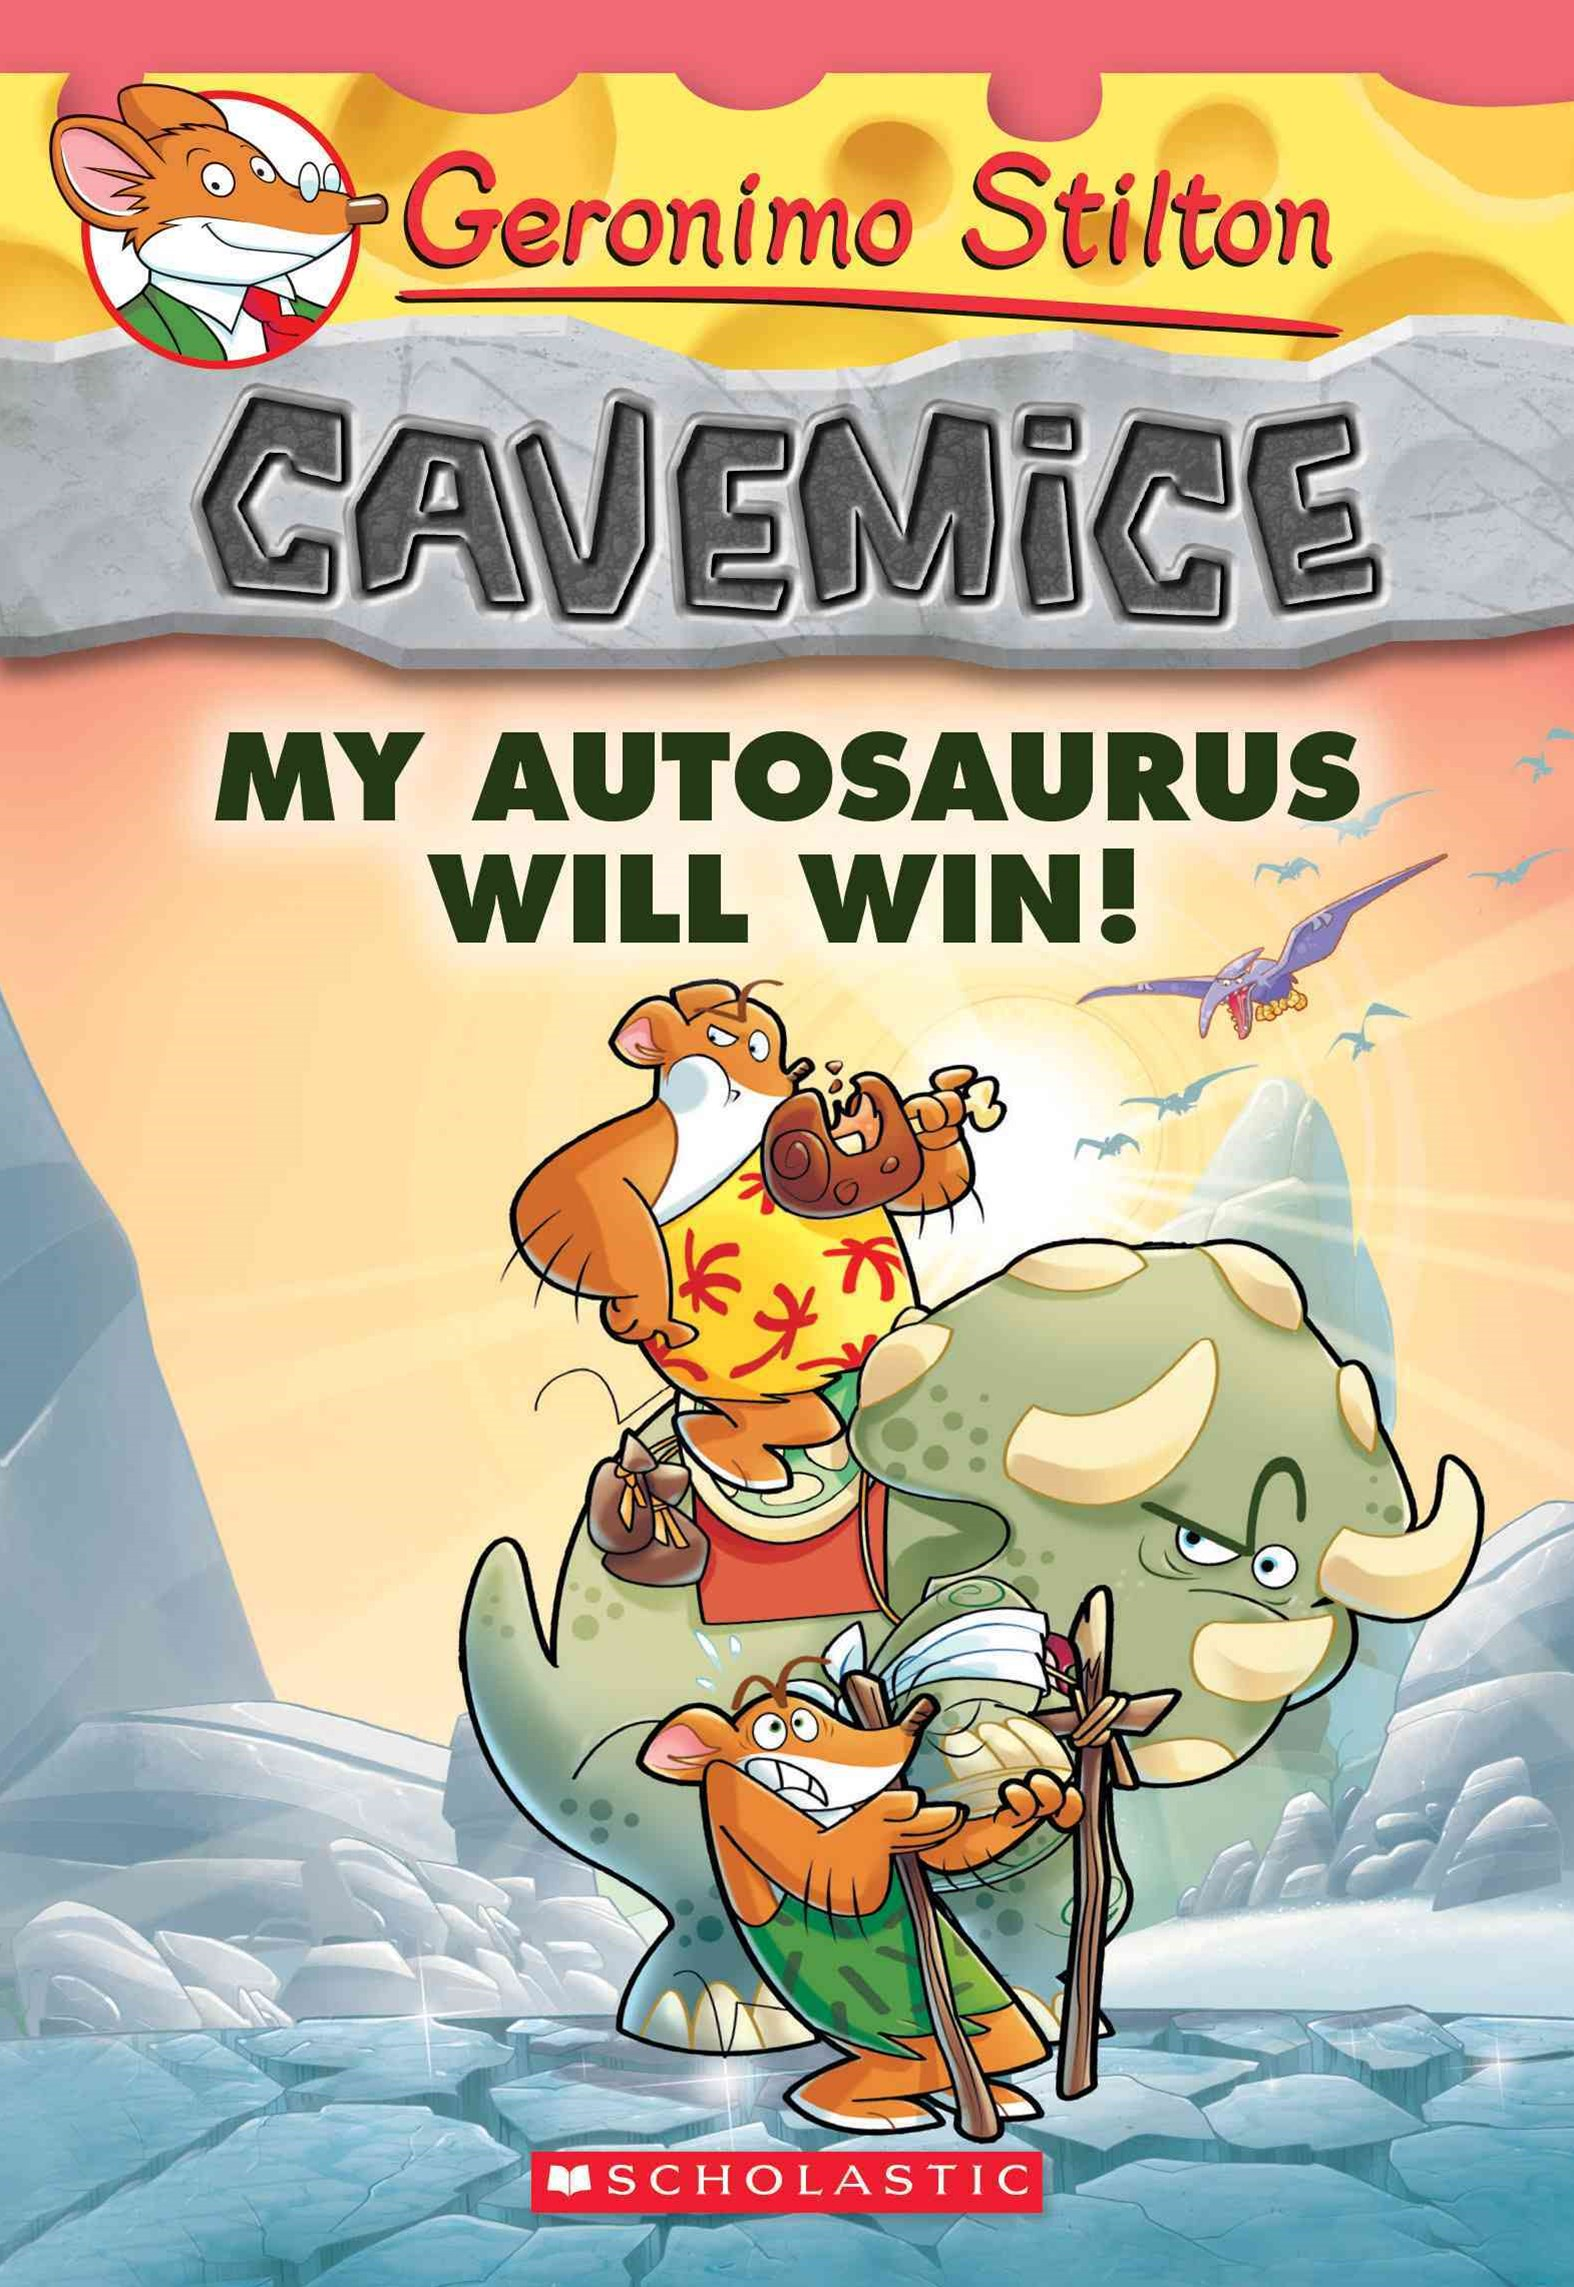 Geronimo Stilton Cavemice: #10 My Autosaurus Will Win!